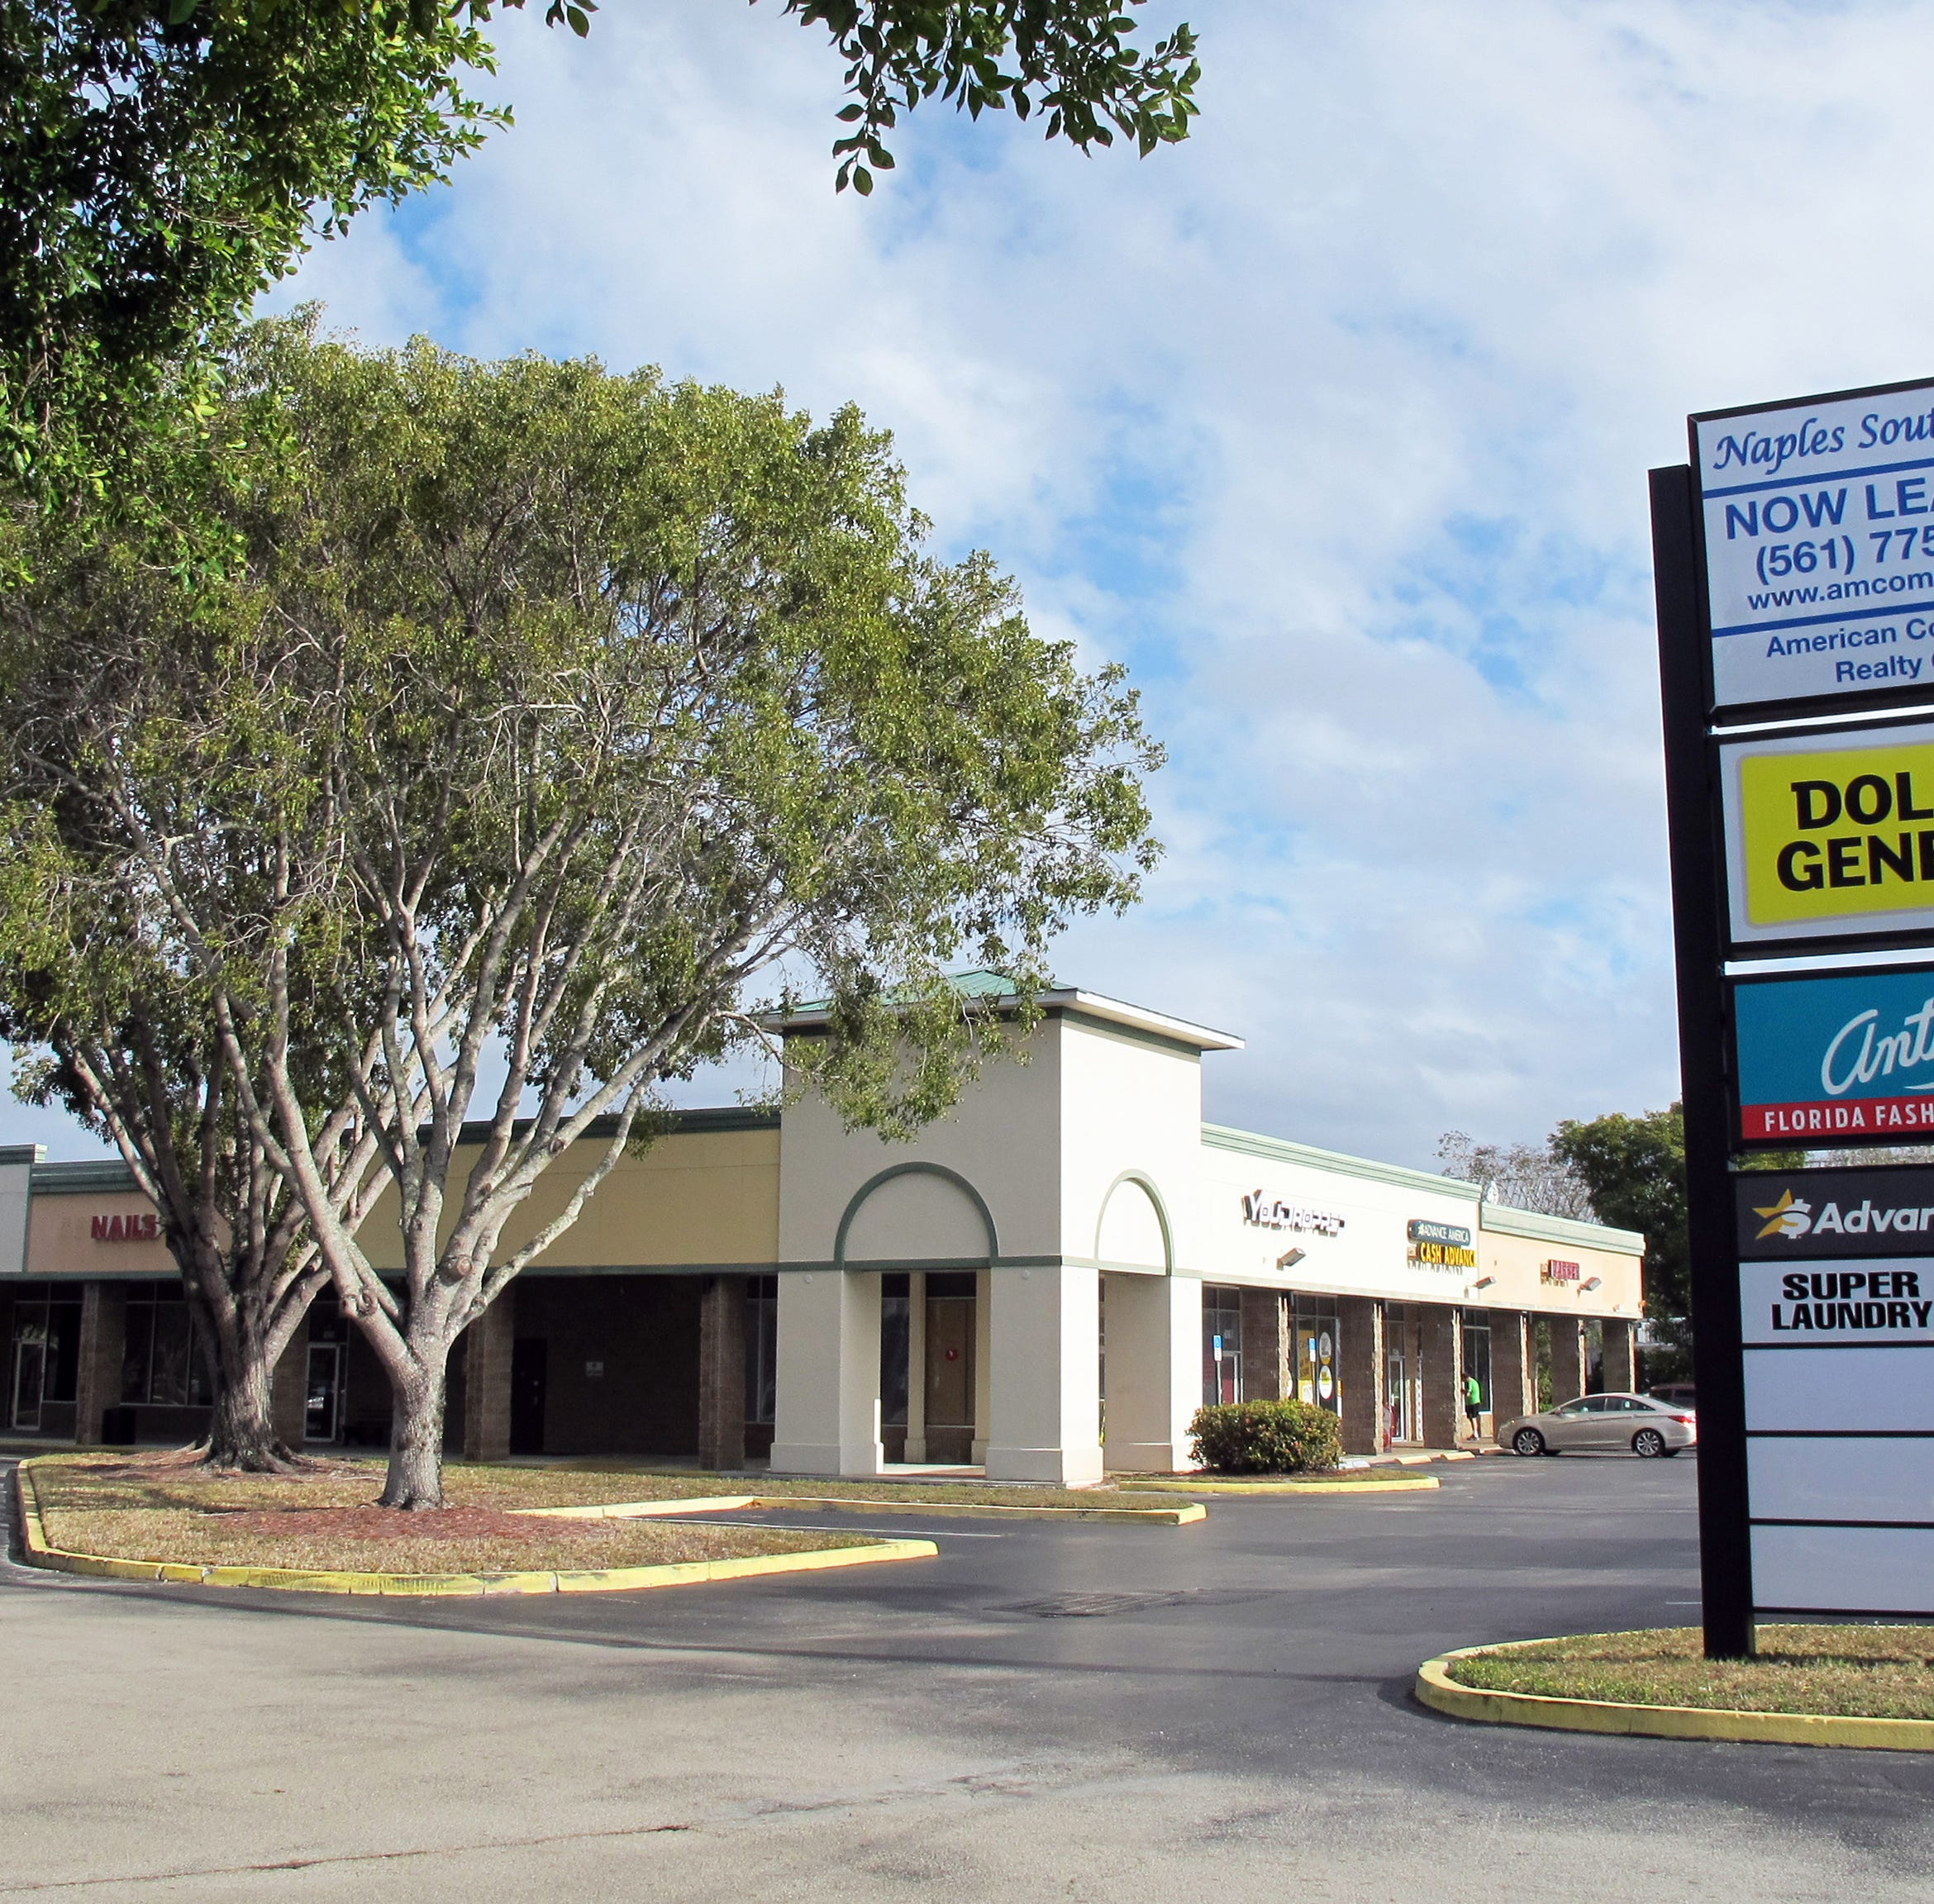 In the Know: Plaza section will be razed for new Wawa gas station and store in East Naples